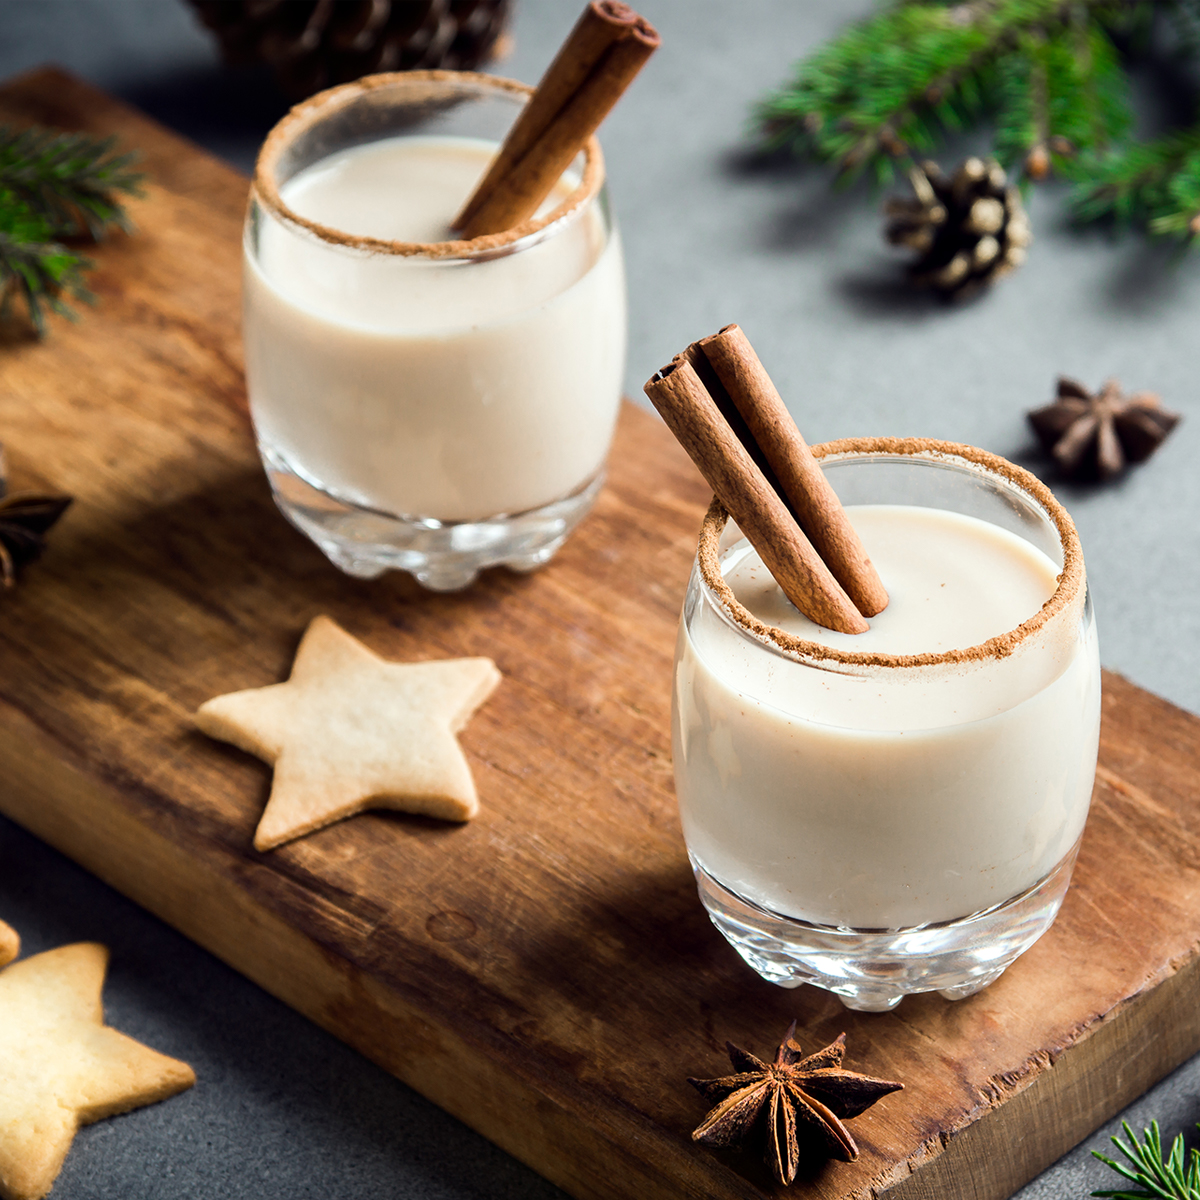 Festive food traditions to make your Christmas special